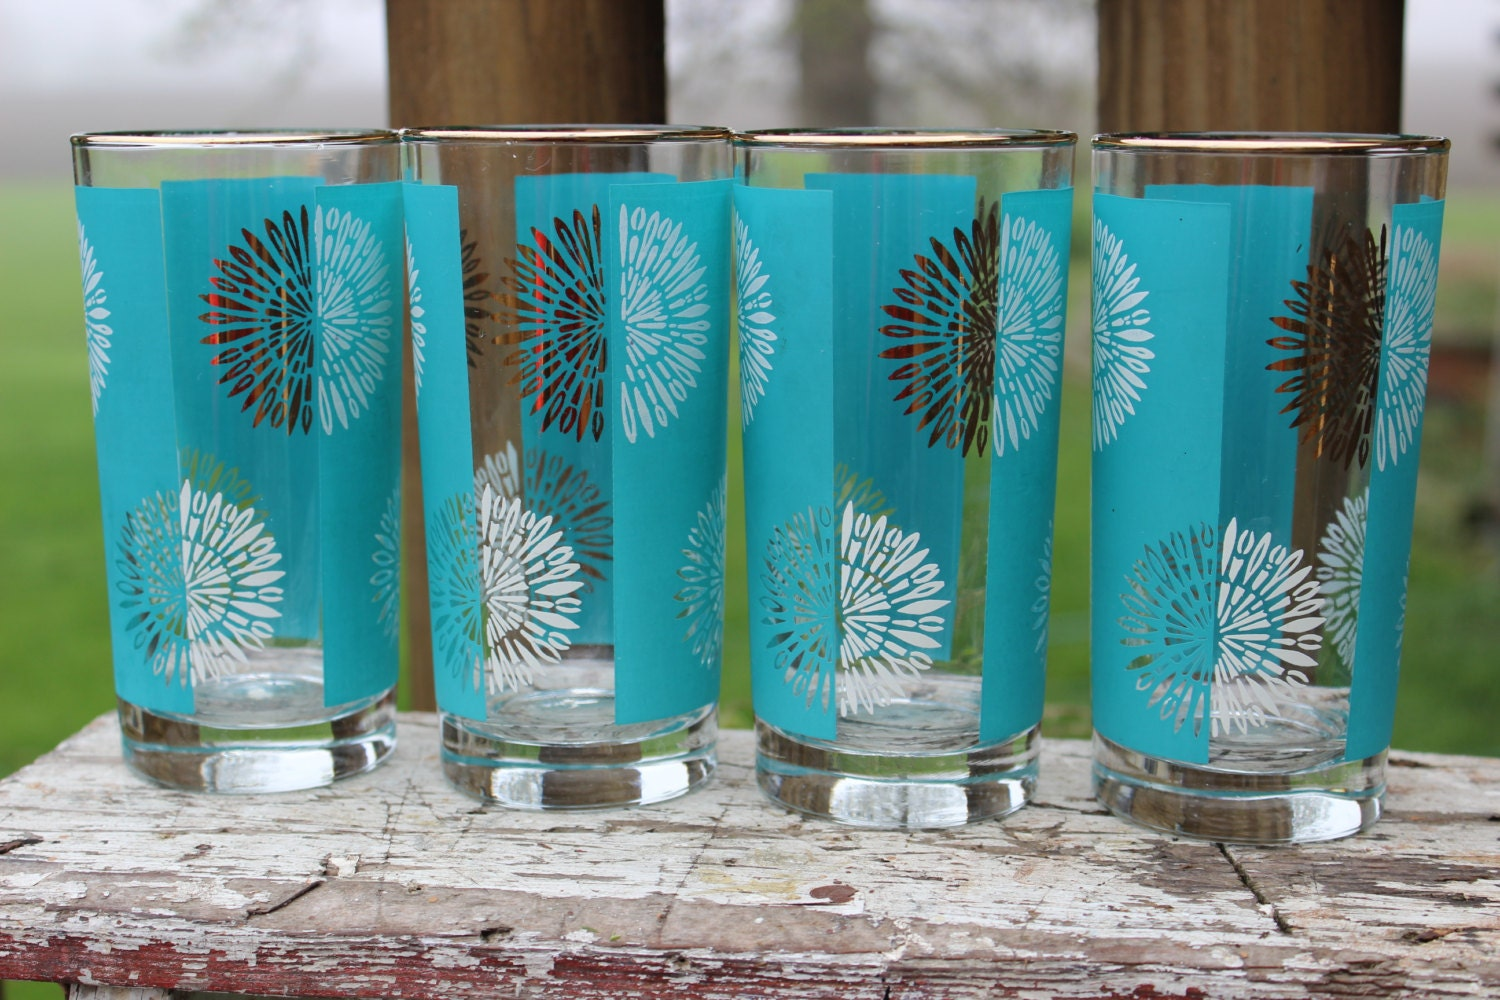 7 vintage atomic starburst barware glasses retro bar glasses - Starburst glassware ...